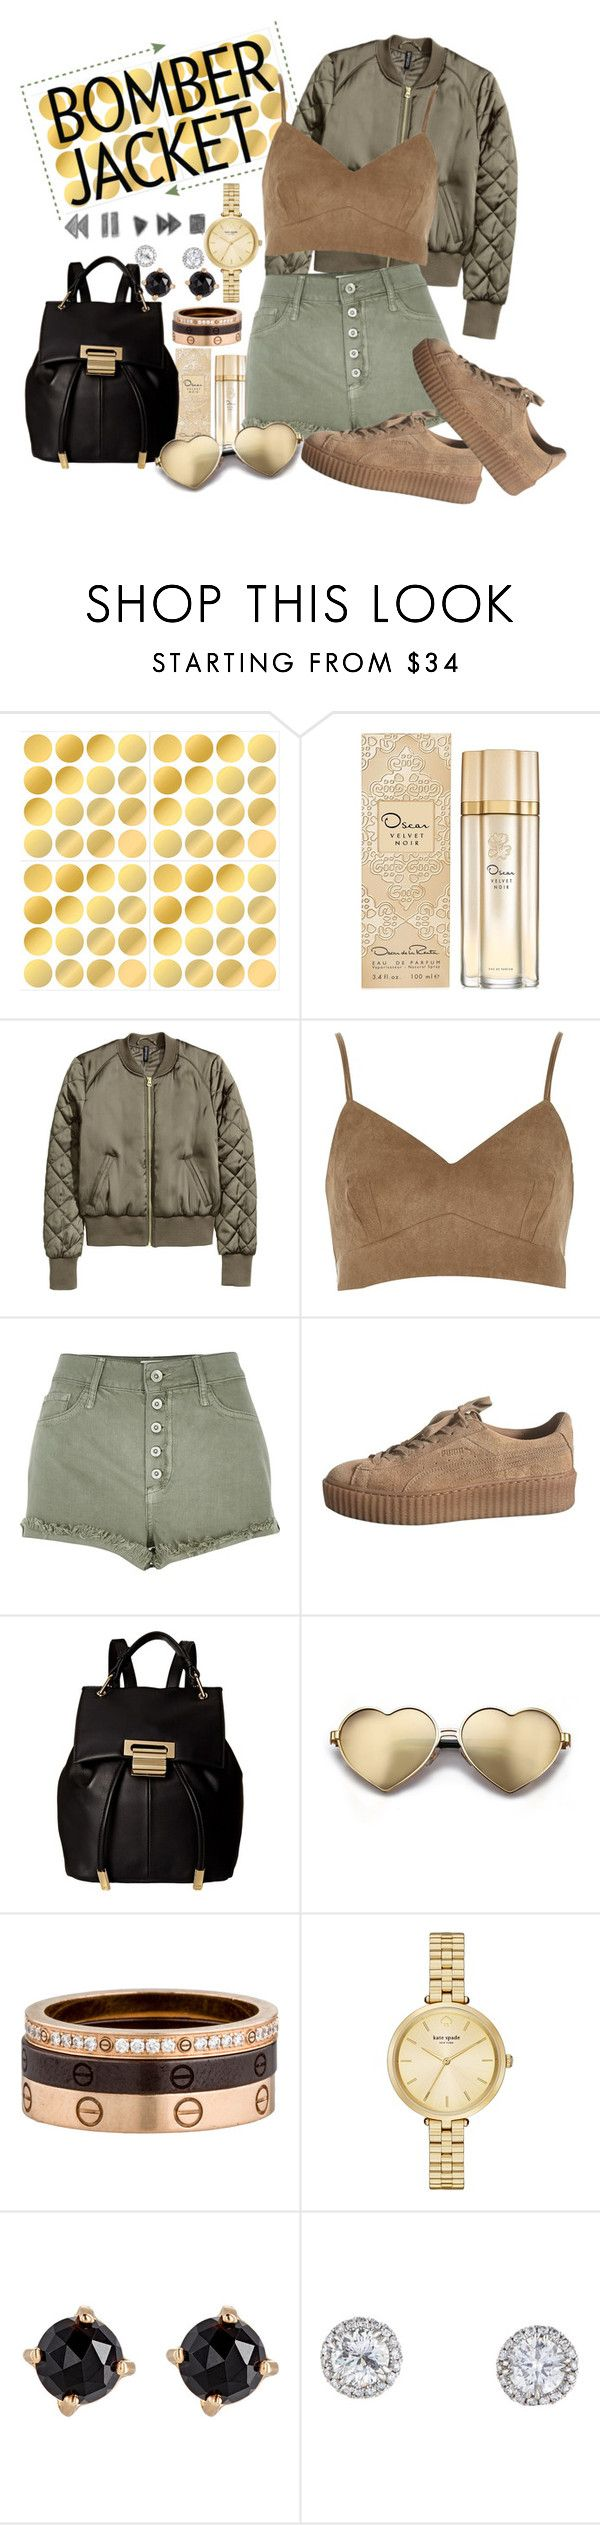 """Bomber jacket ♥"" by passion-girlz ❤ liked on Polyvore featuring Oscar de la Renta, River Island, Ivanka Trump, Wildfox, Cartier, Kate Spade, Irene Neuwirth and bomberjackets"